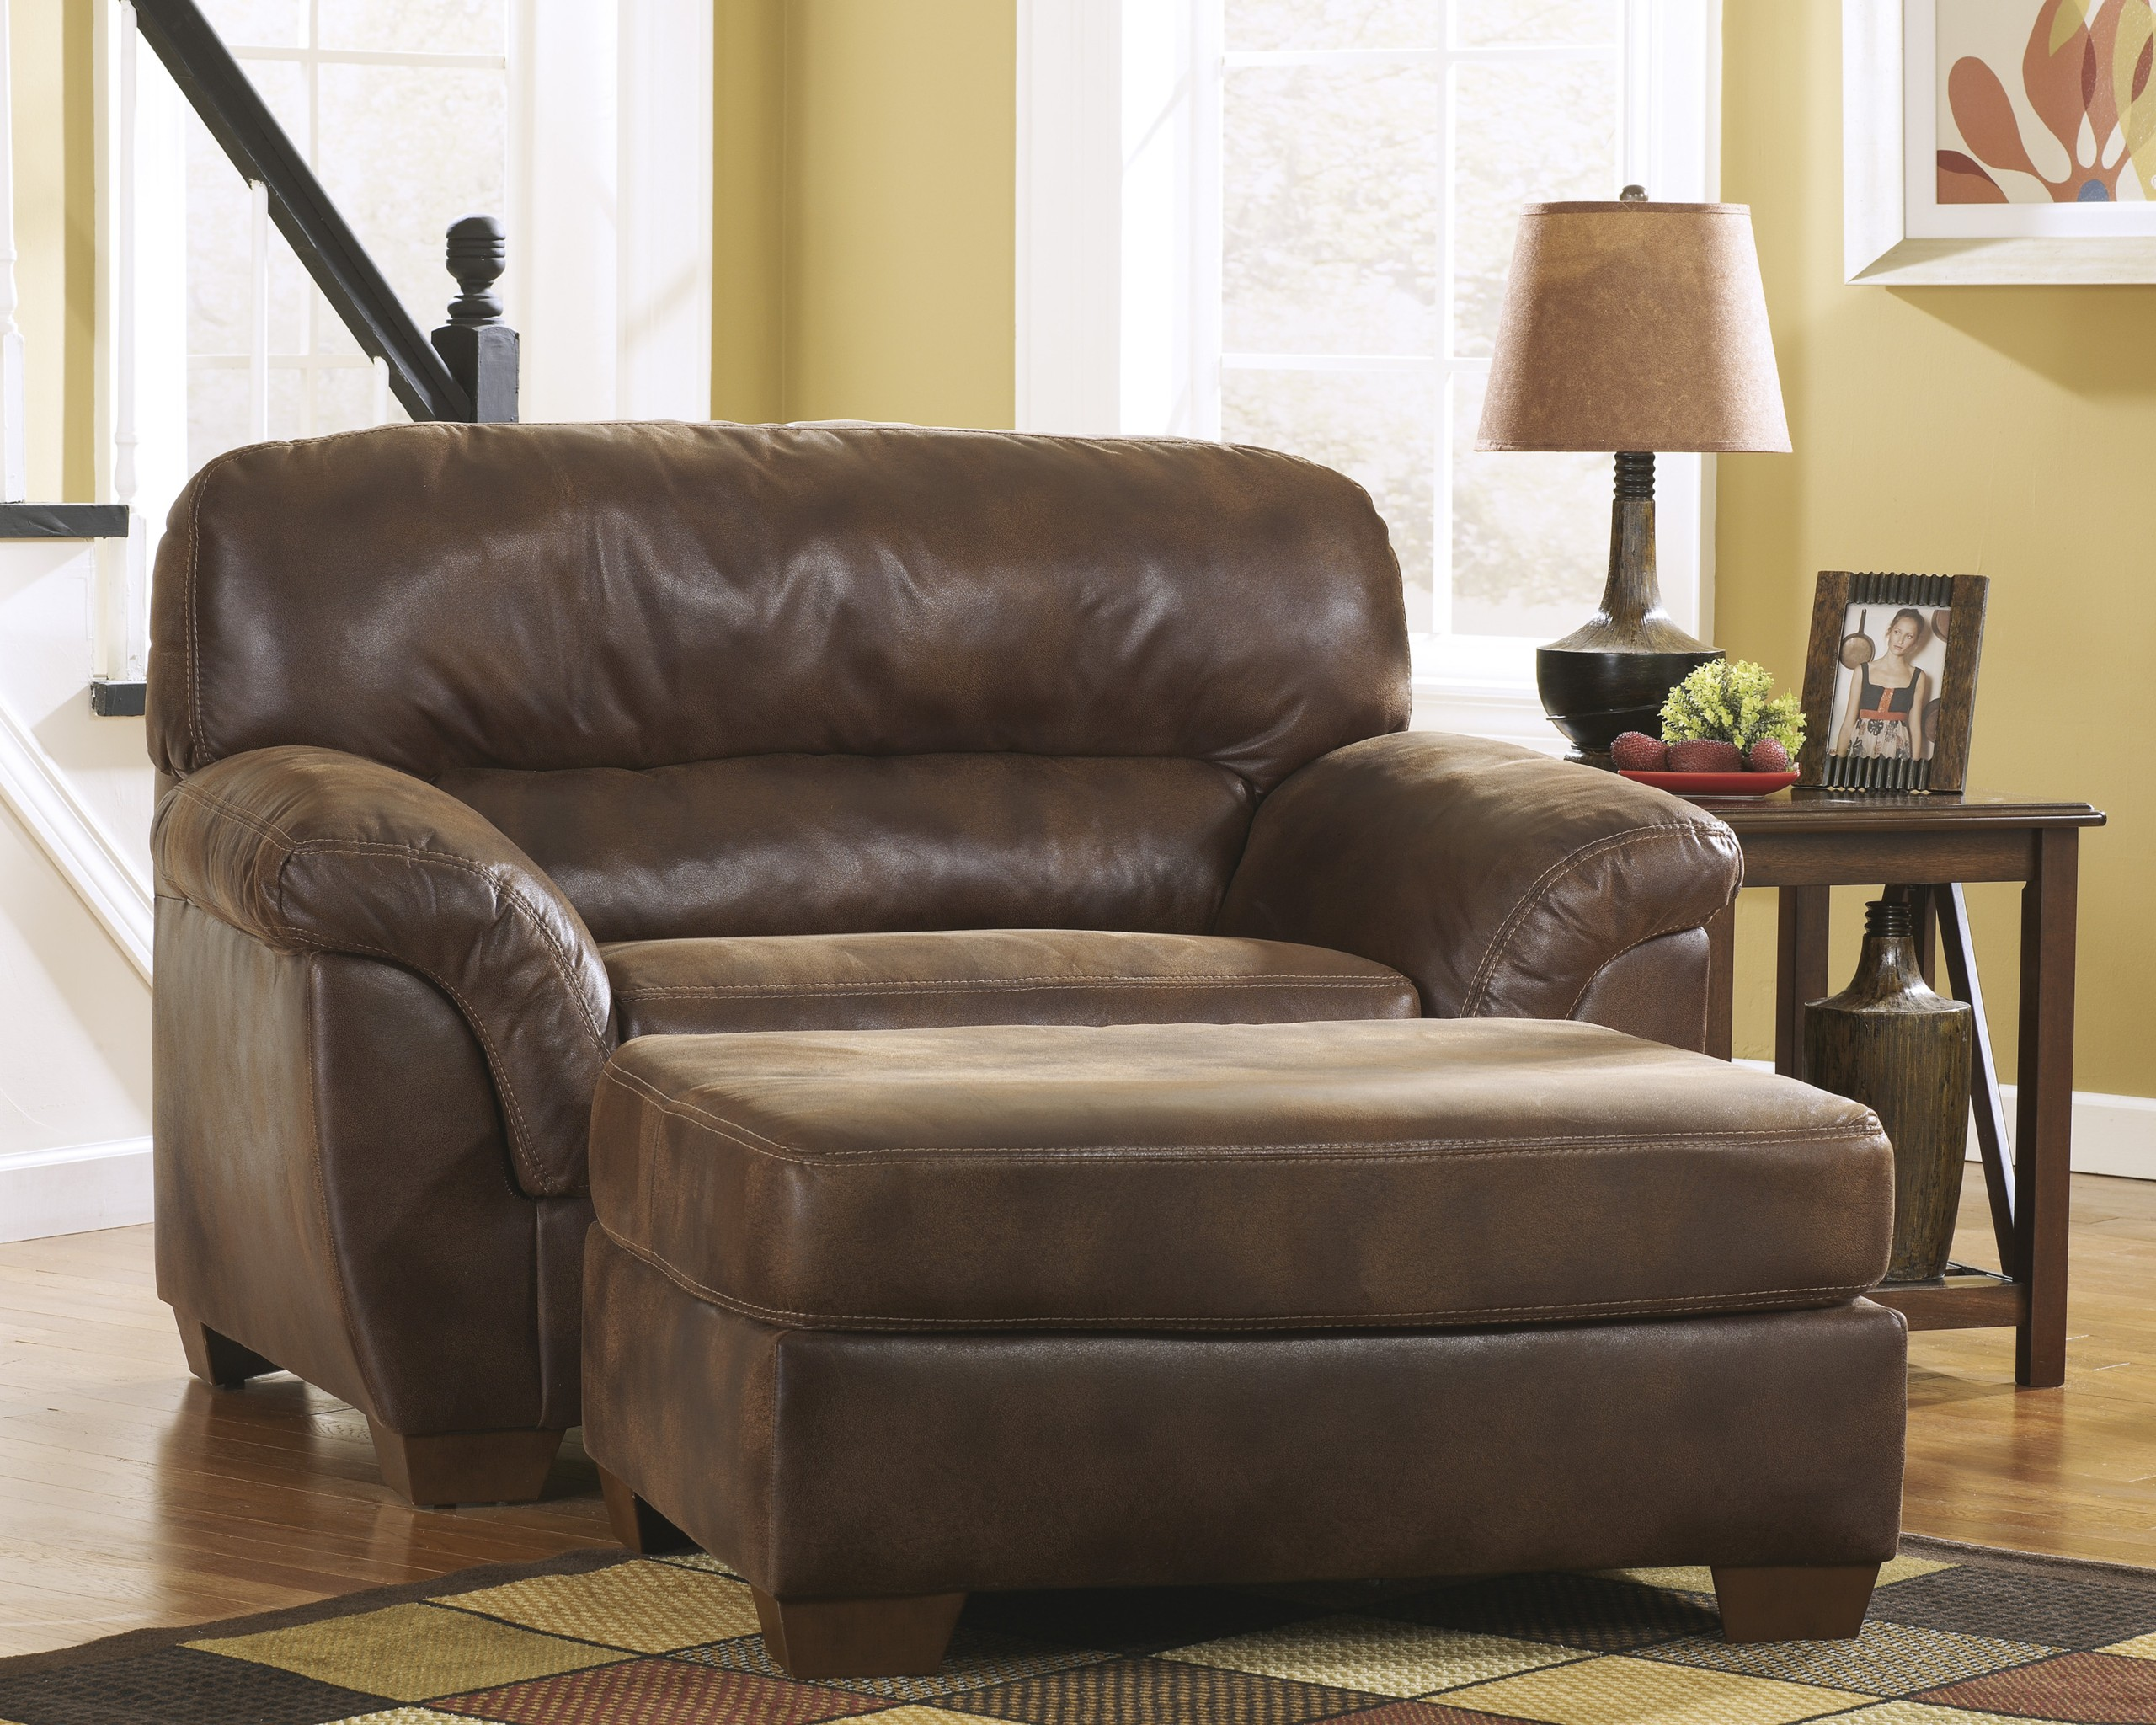 Superbe Leather Chair And A Half With Ottoman   Foter